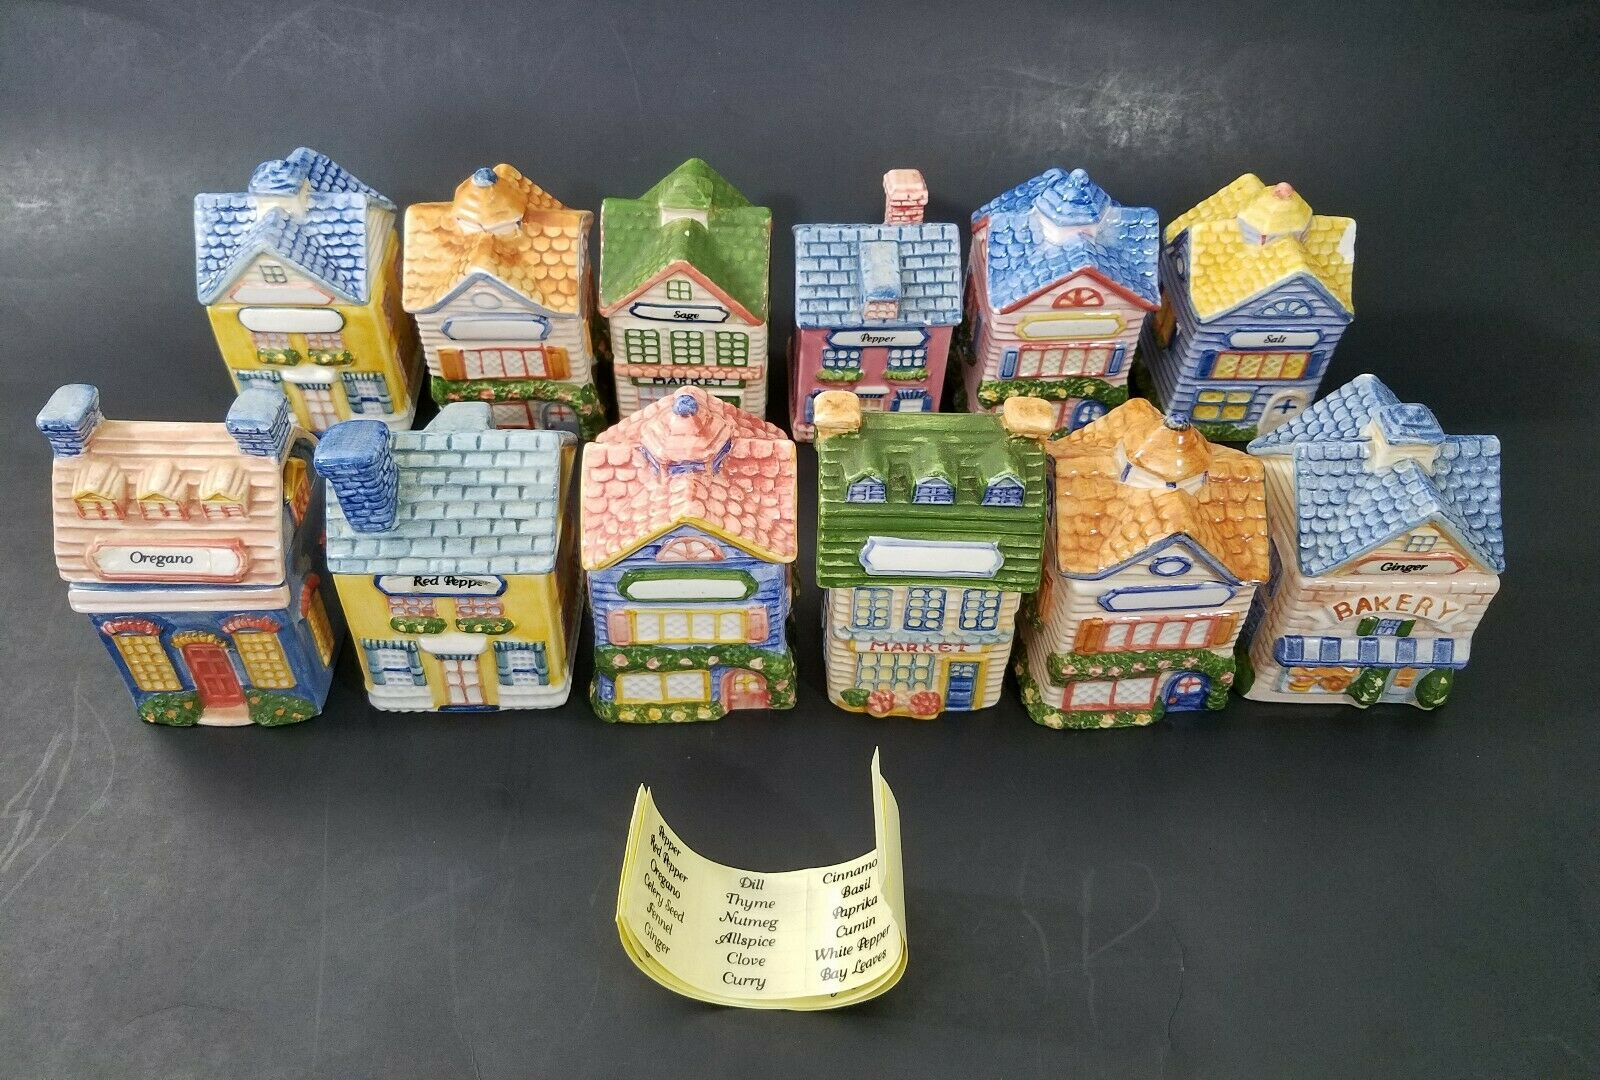 Lot of 12 Vintage Avon Avon Avon House & Building Ceramic Spice Container Holders w Labels 1a440f